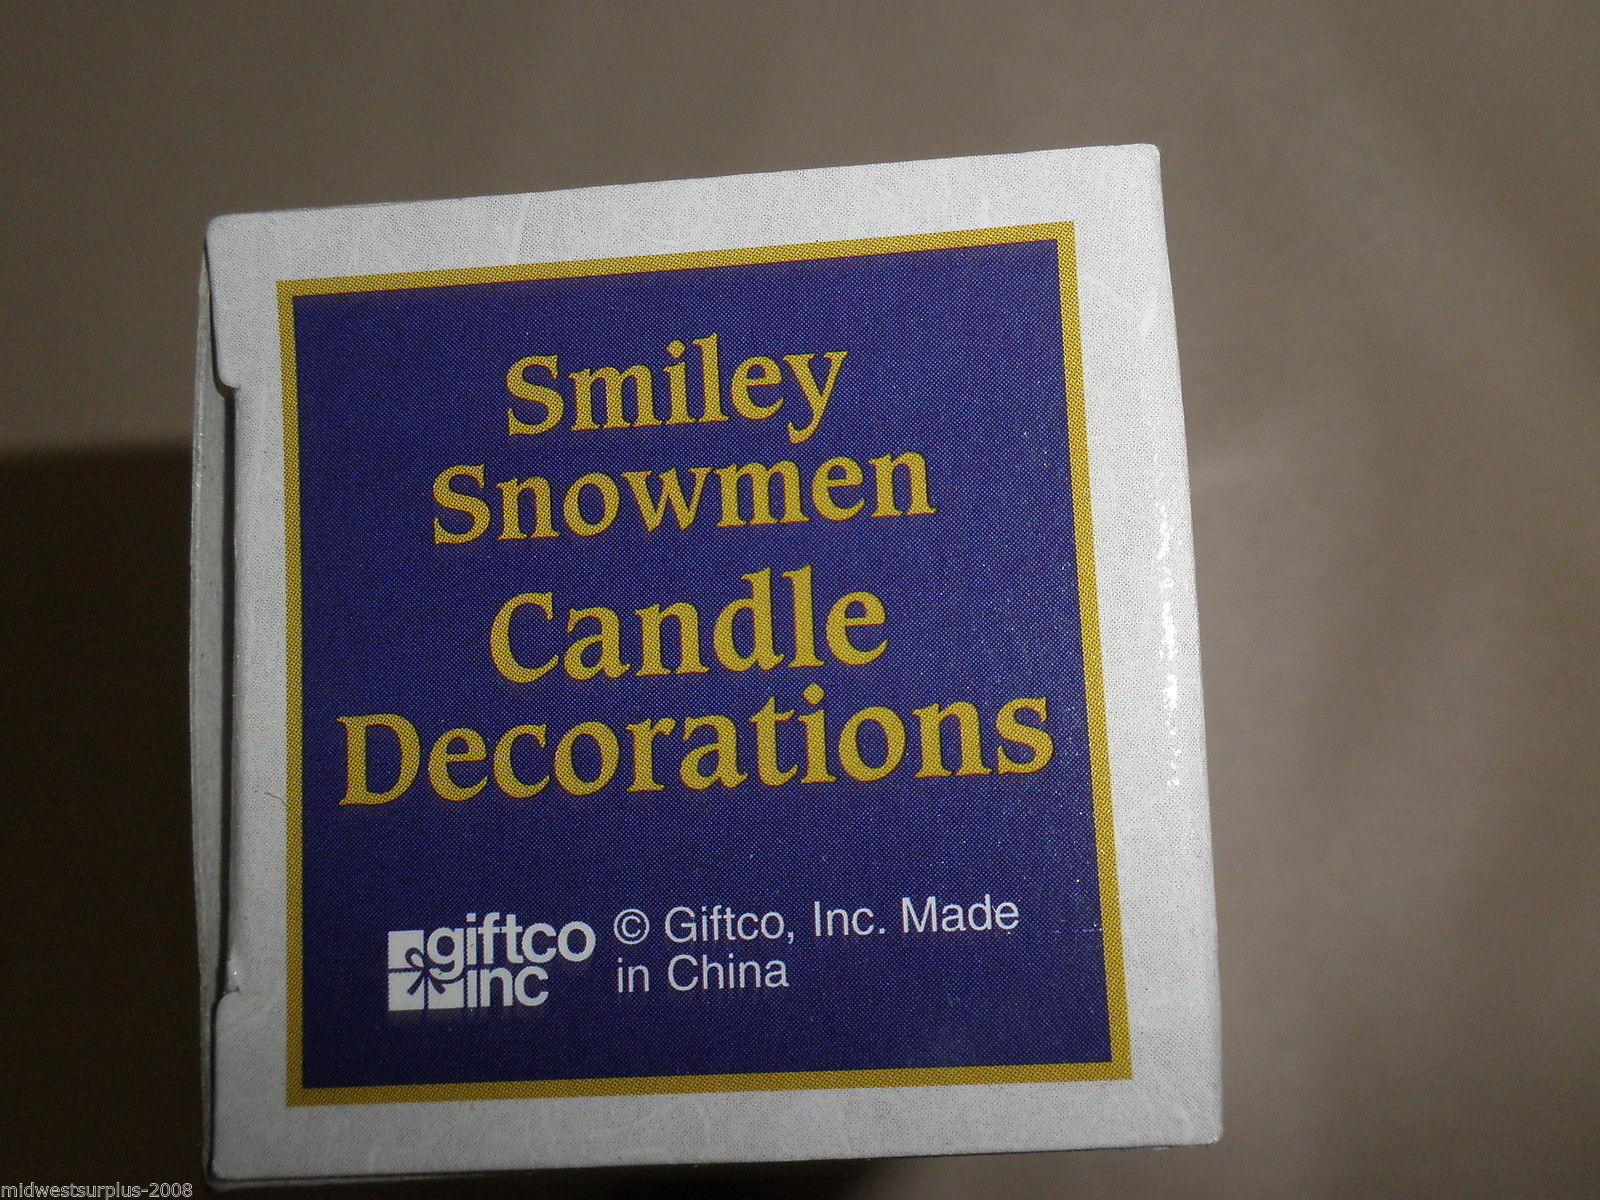 Giftco Inc Smiley Snowmen Candle Decorations #047256052247